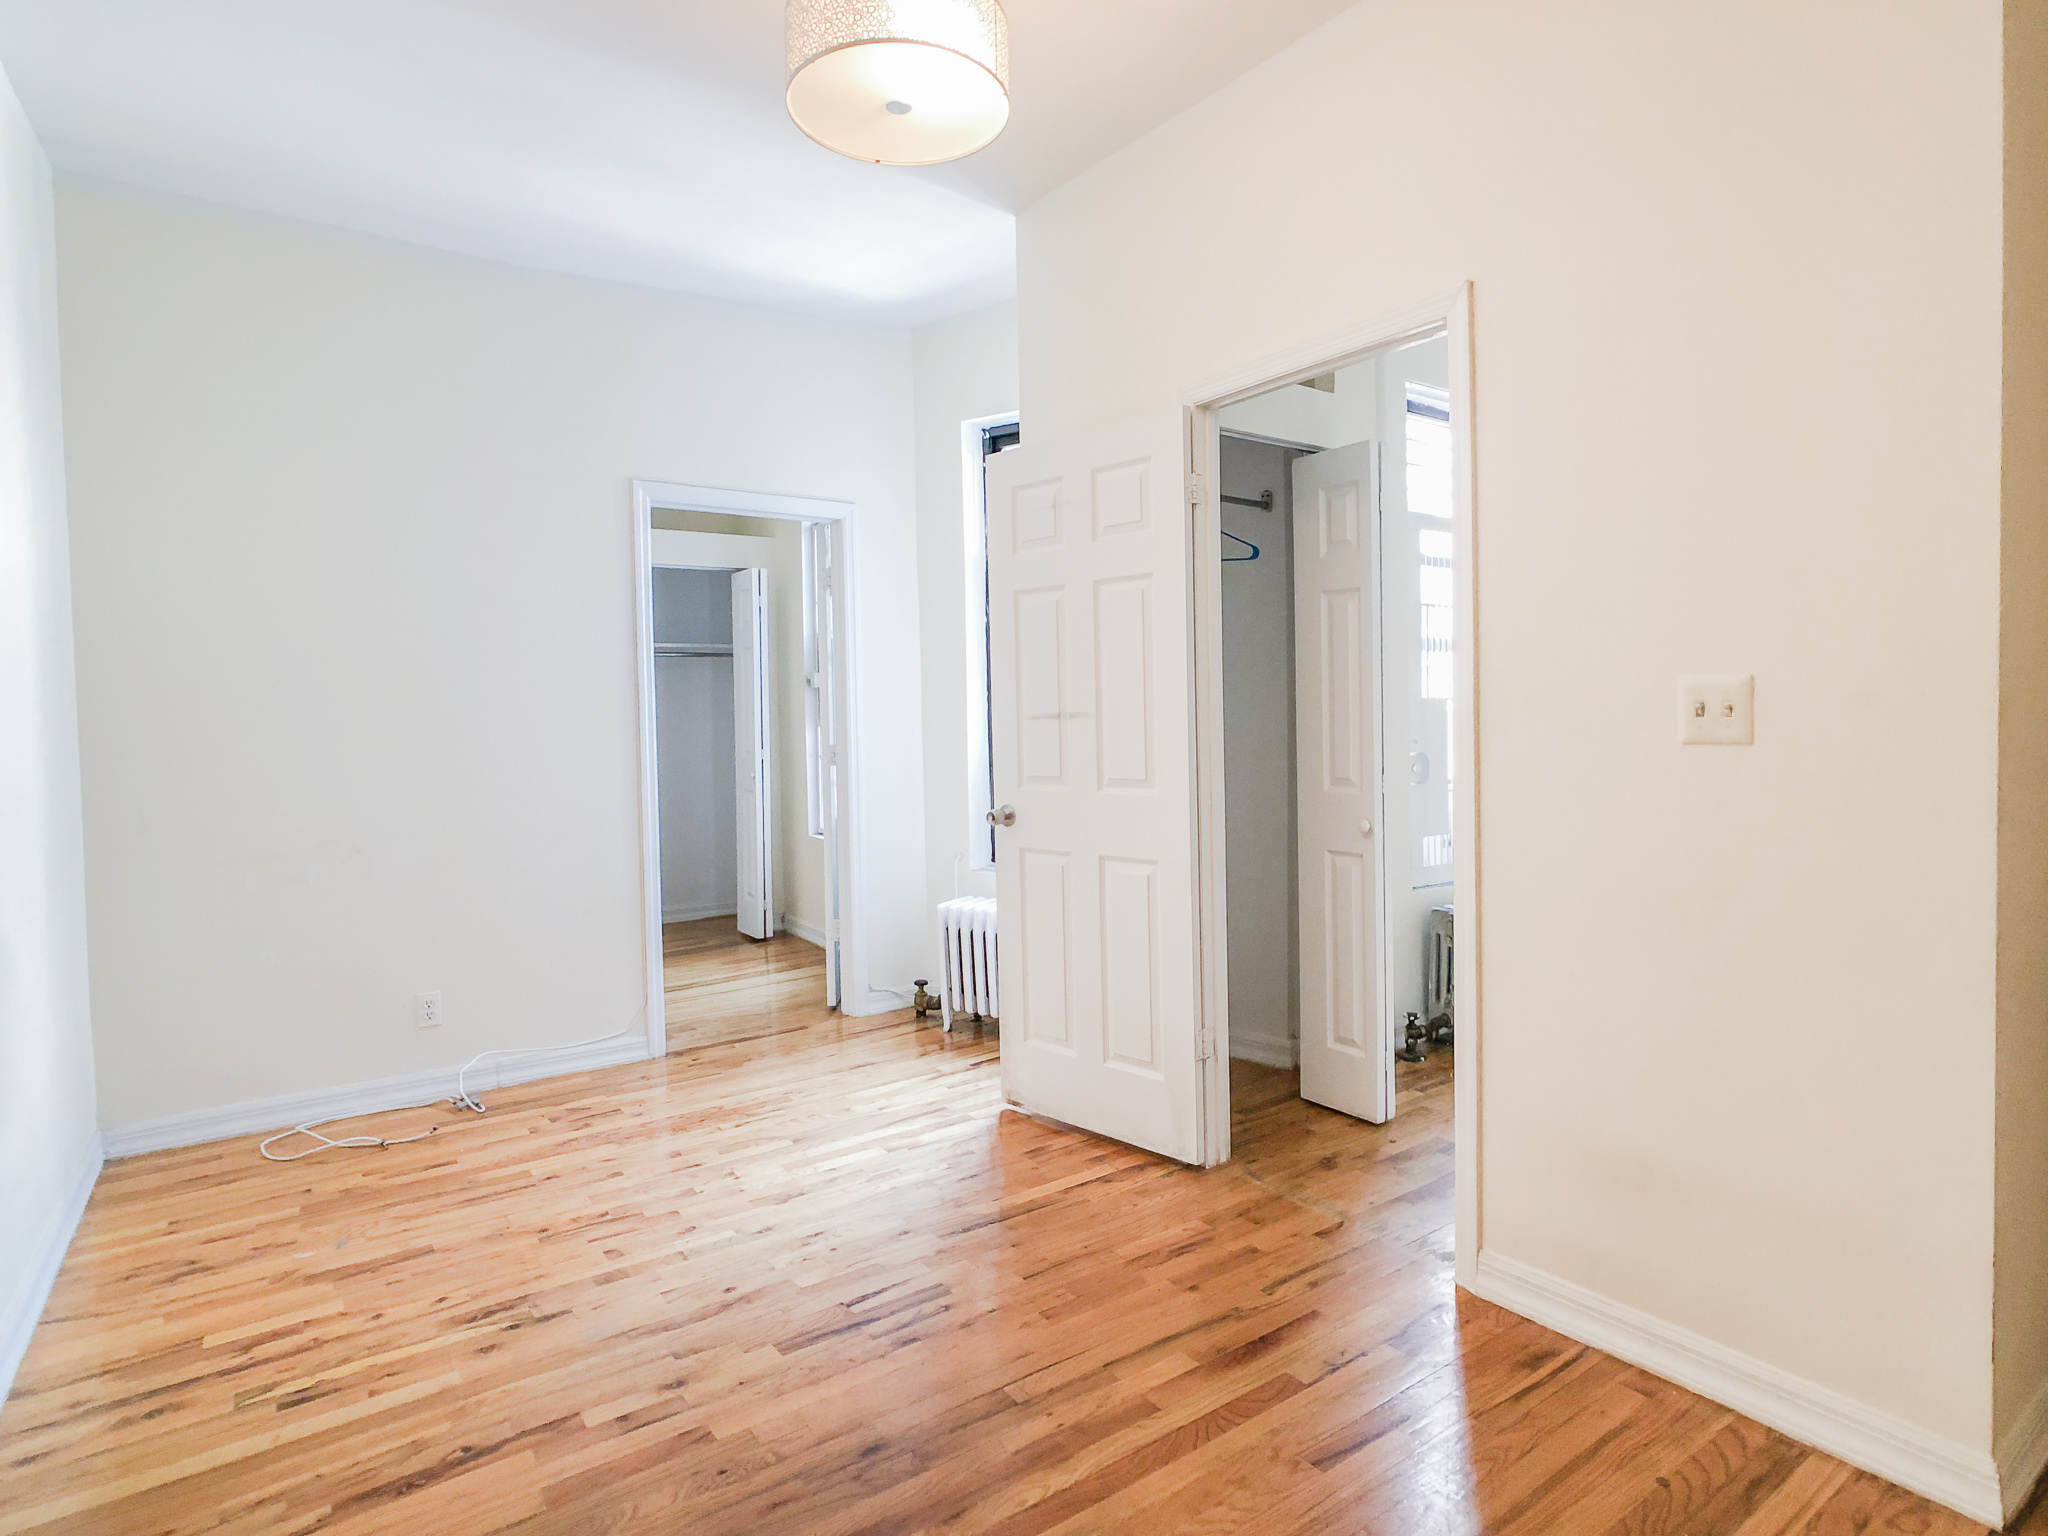 700 E 9 Street #20 - Bright two bedroom home in East Village! The unit features two separate bedrooms, large living space and separate windowed kitchen with dishwasher.Located on the 5th floor of a walk up building in east village. Close to public transportation, cafes and shopping.Rent: $2,695 /monthTerms: 12 - 12 MonthsAvailable: Immediate